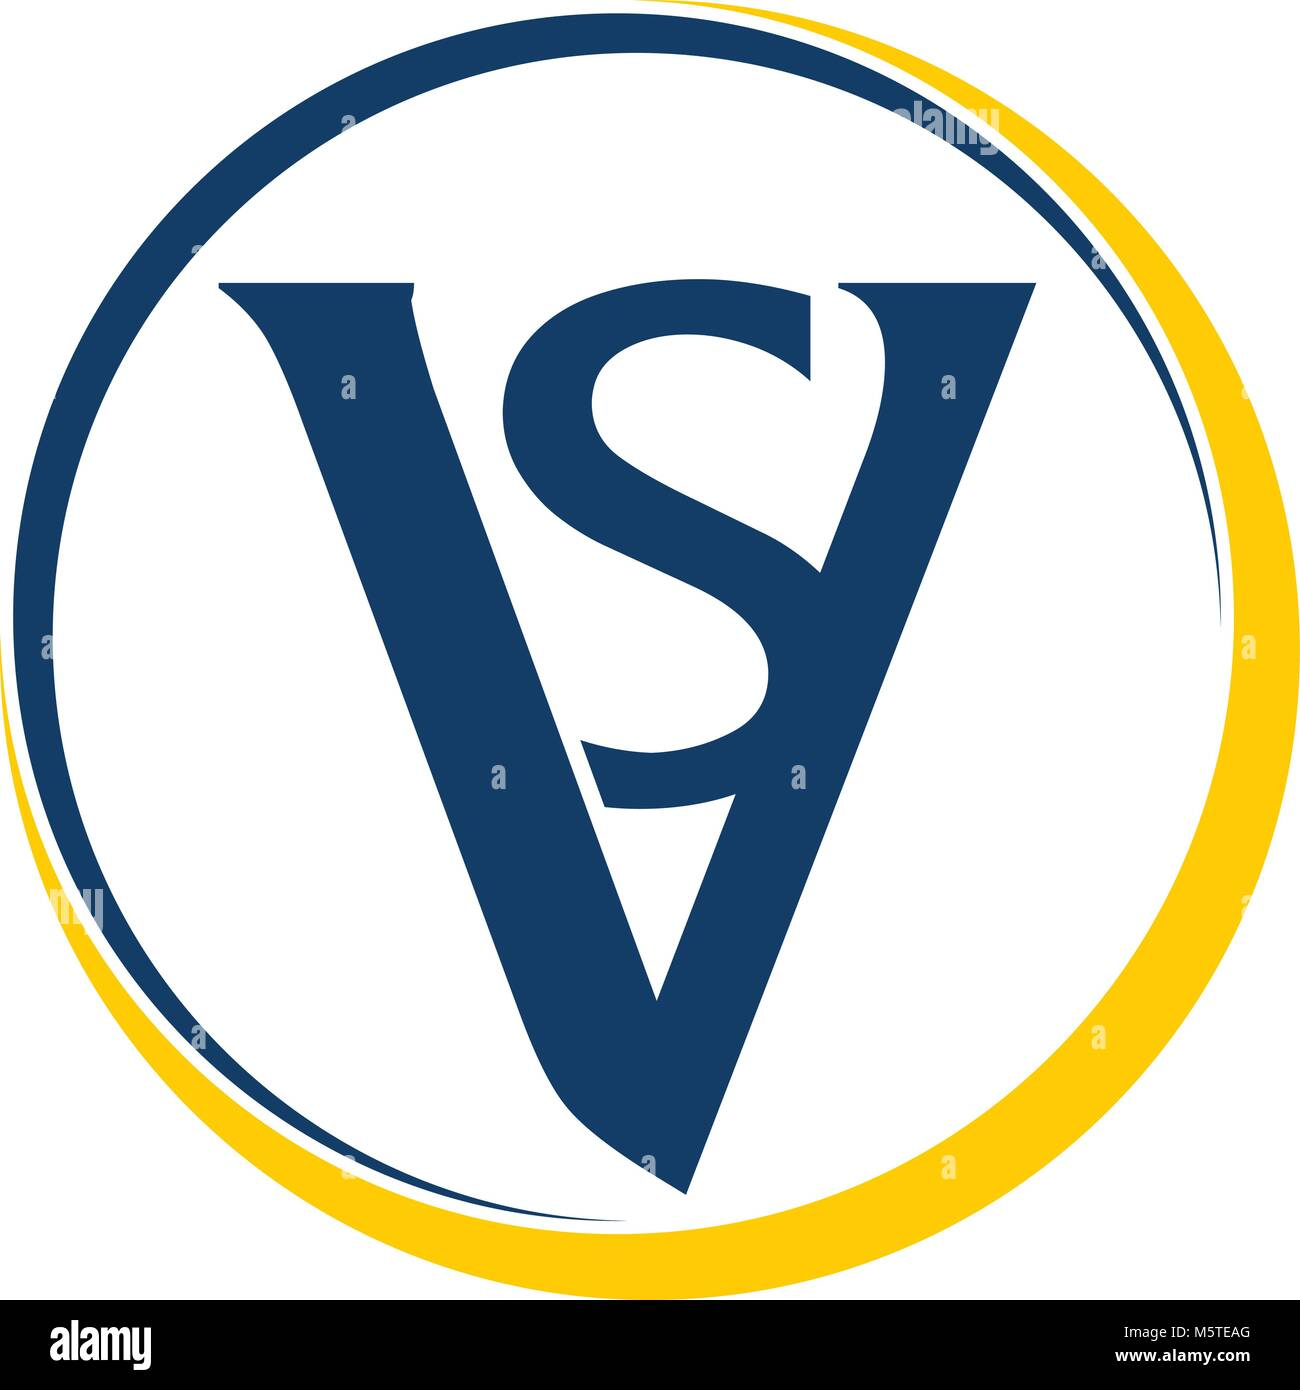 Letter VS Emblem - Stock Vector